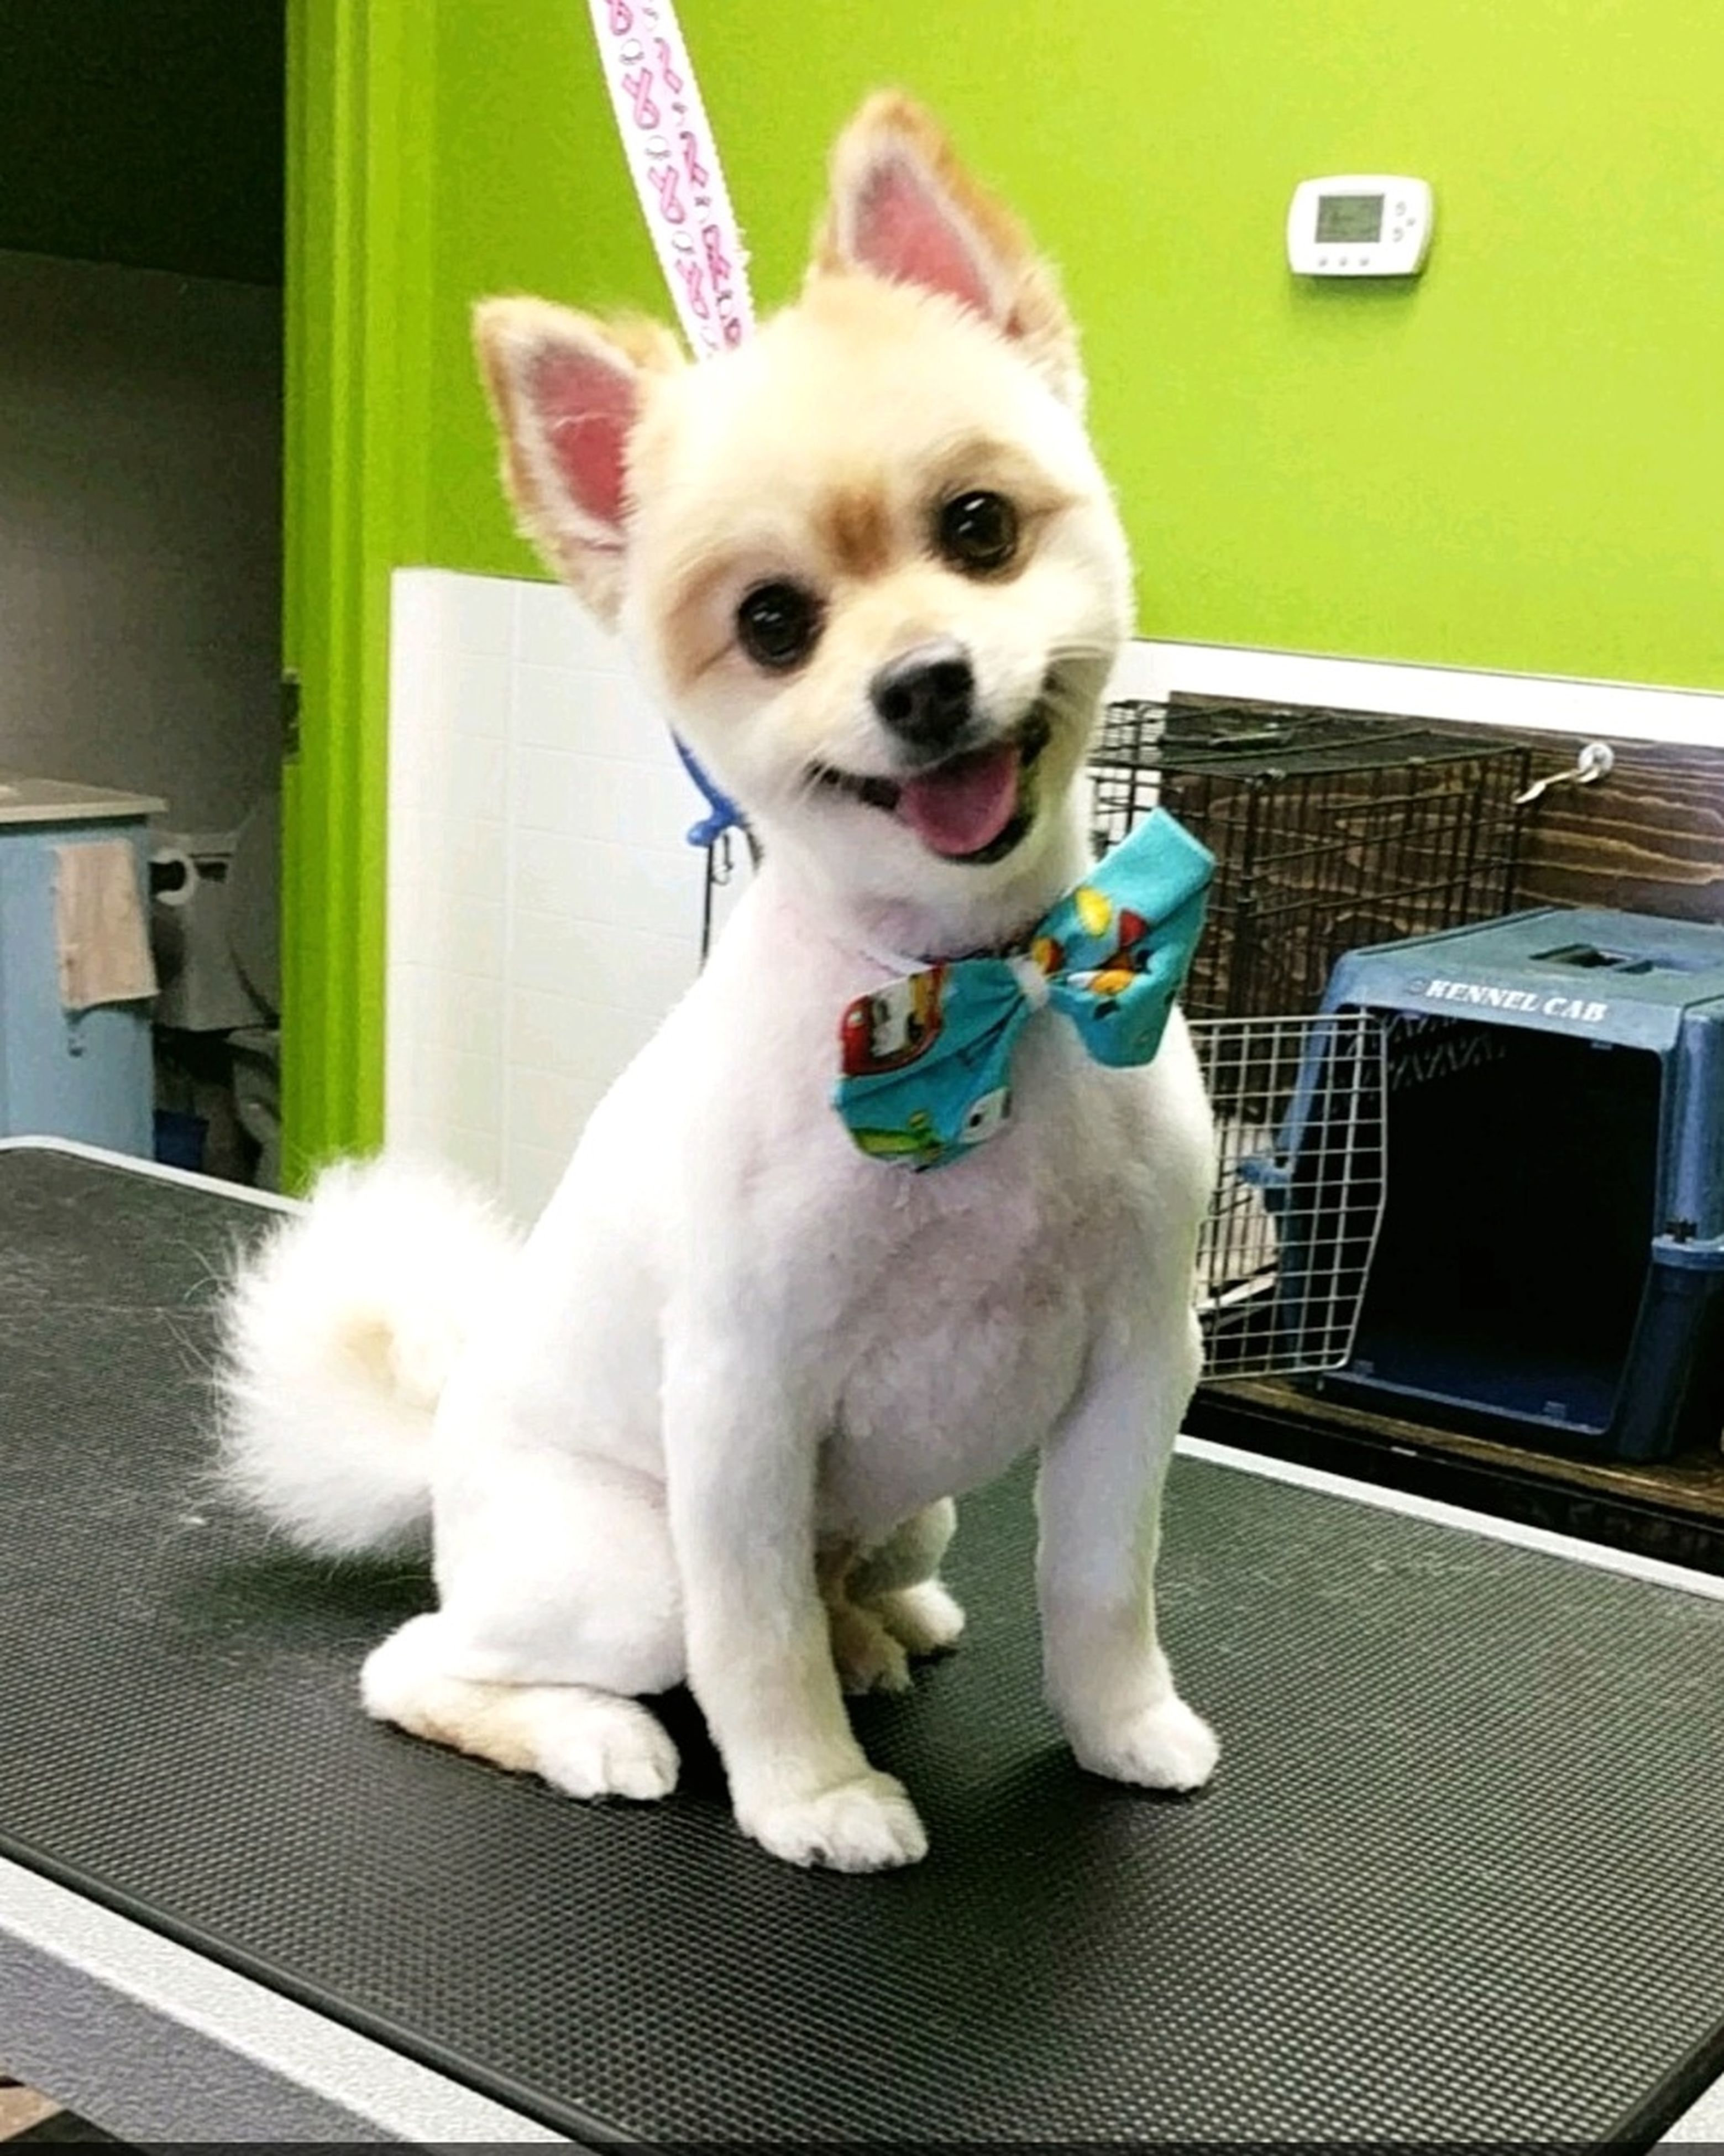 pets, dog, looking at camera, portrait, one animal, animal themes, domestic animals, full length, no people, indoors, mammal, day, pet clothing, pomeranian